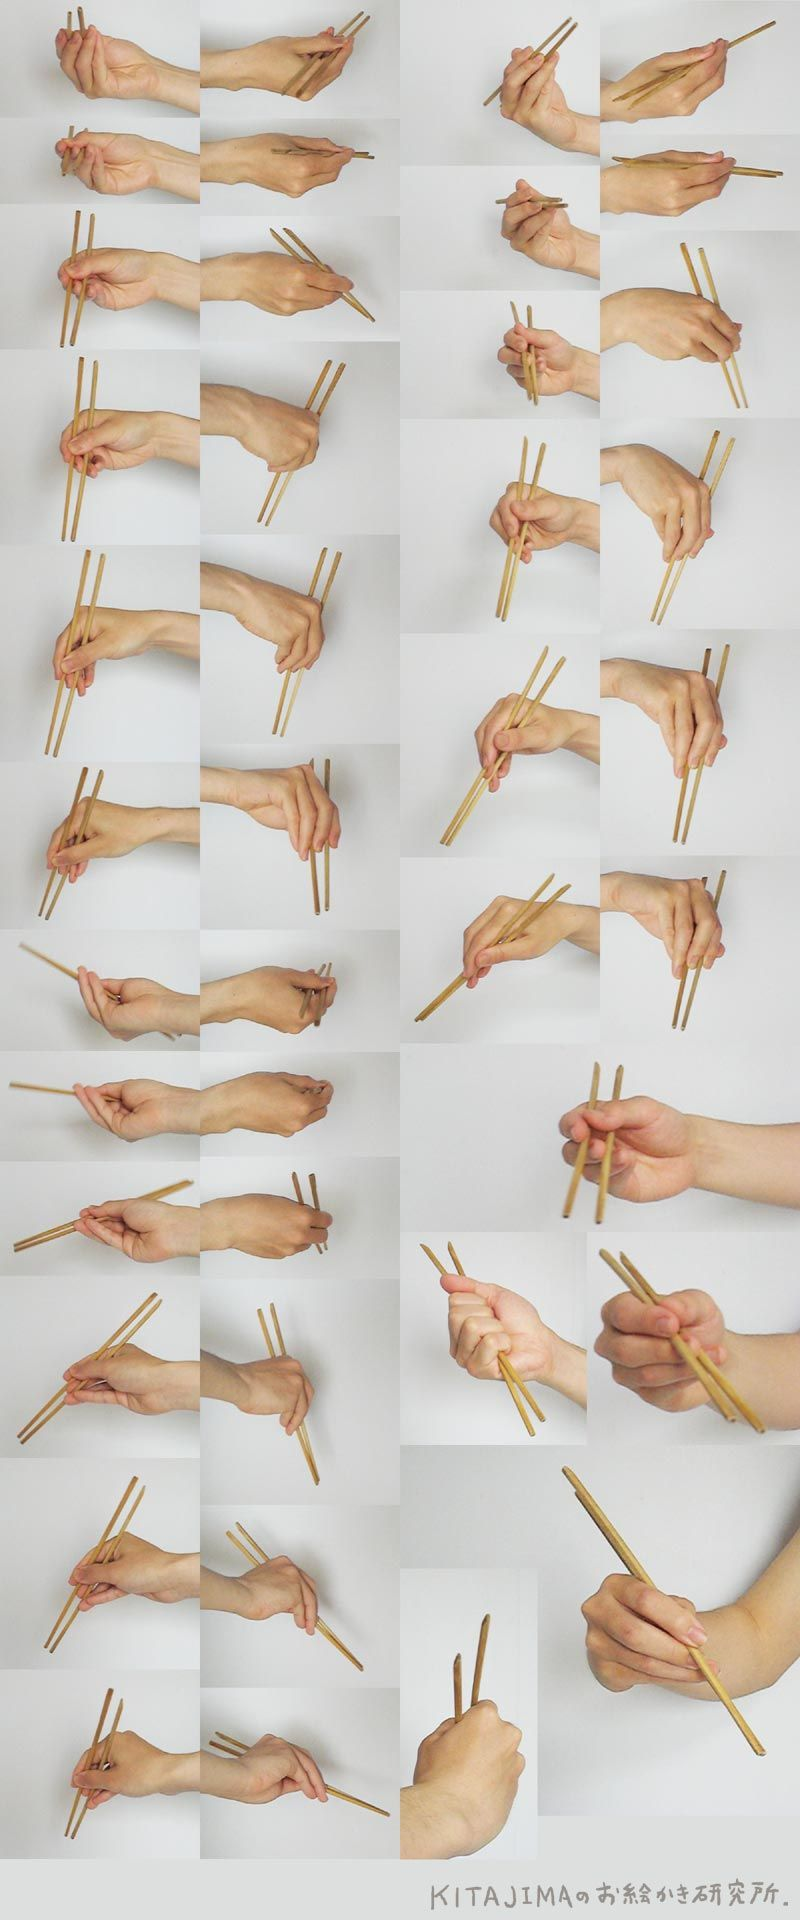 Use chopsticks with right hand | Anatomy and poses | Pinterest ...